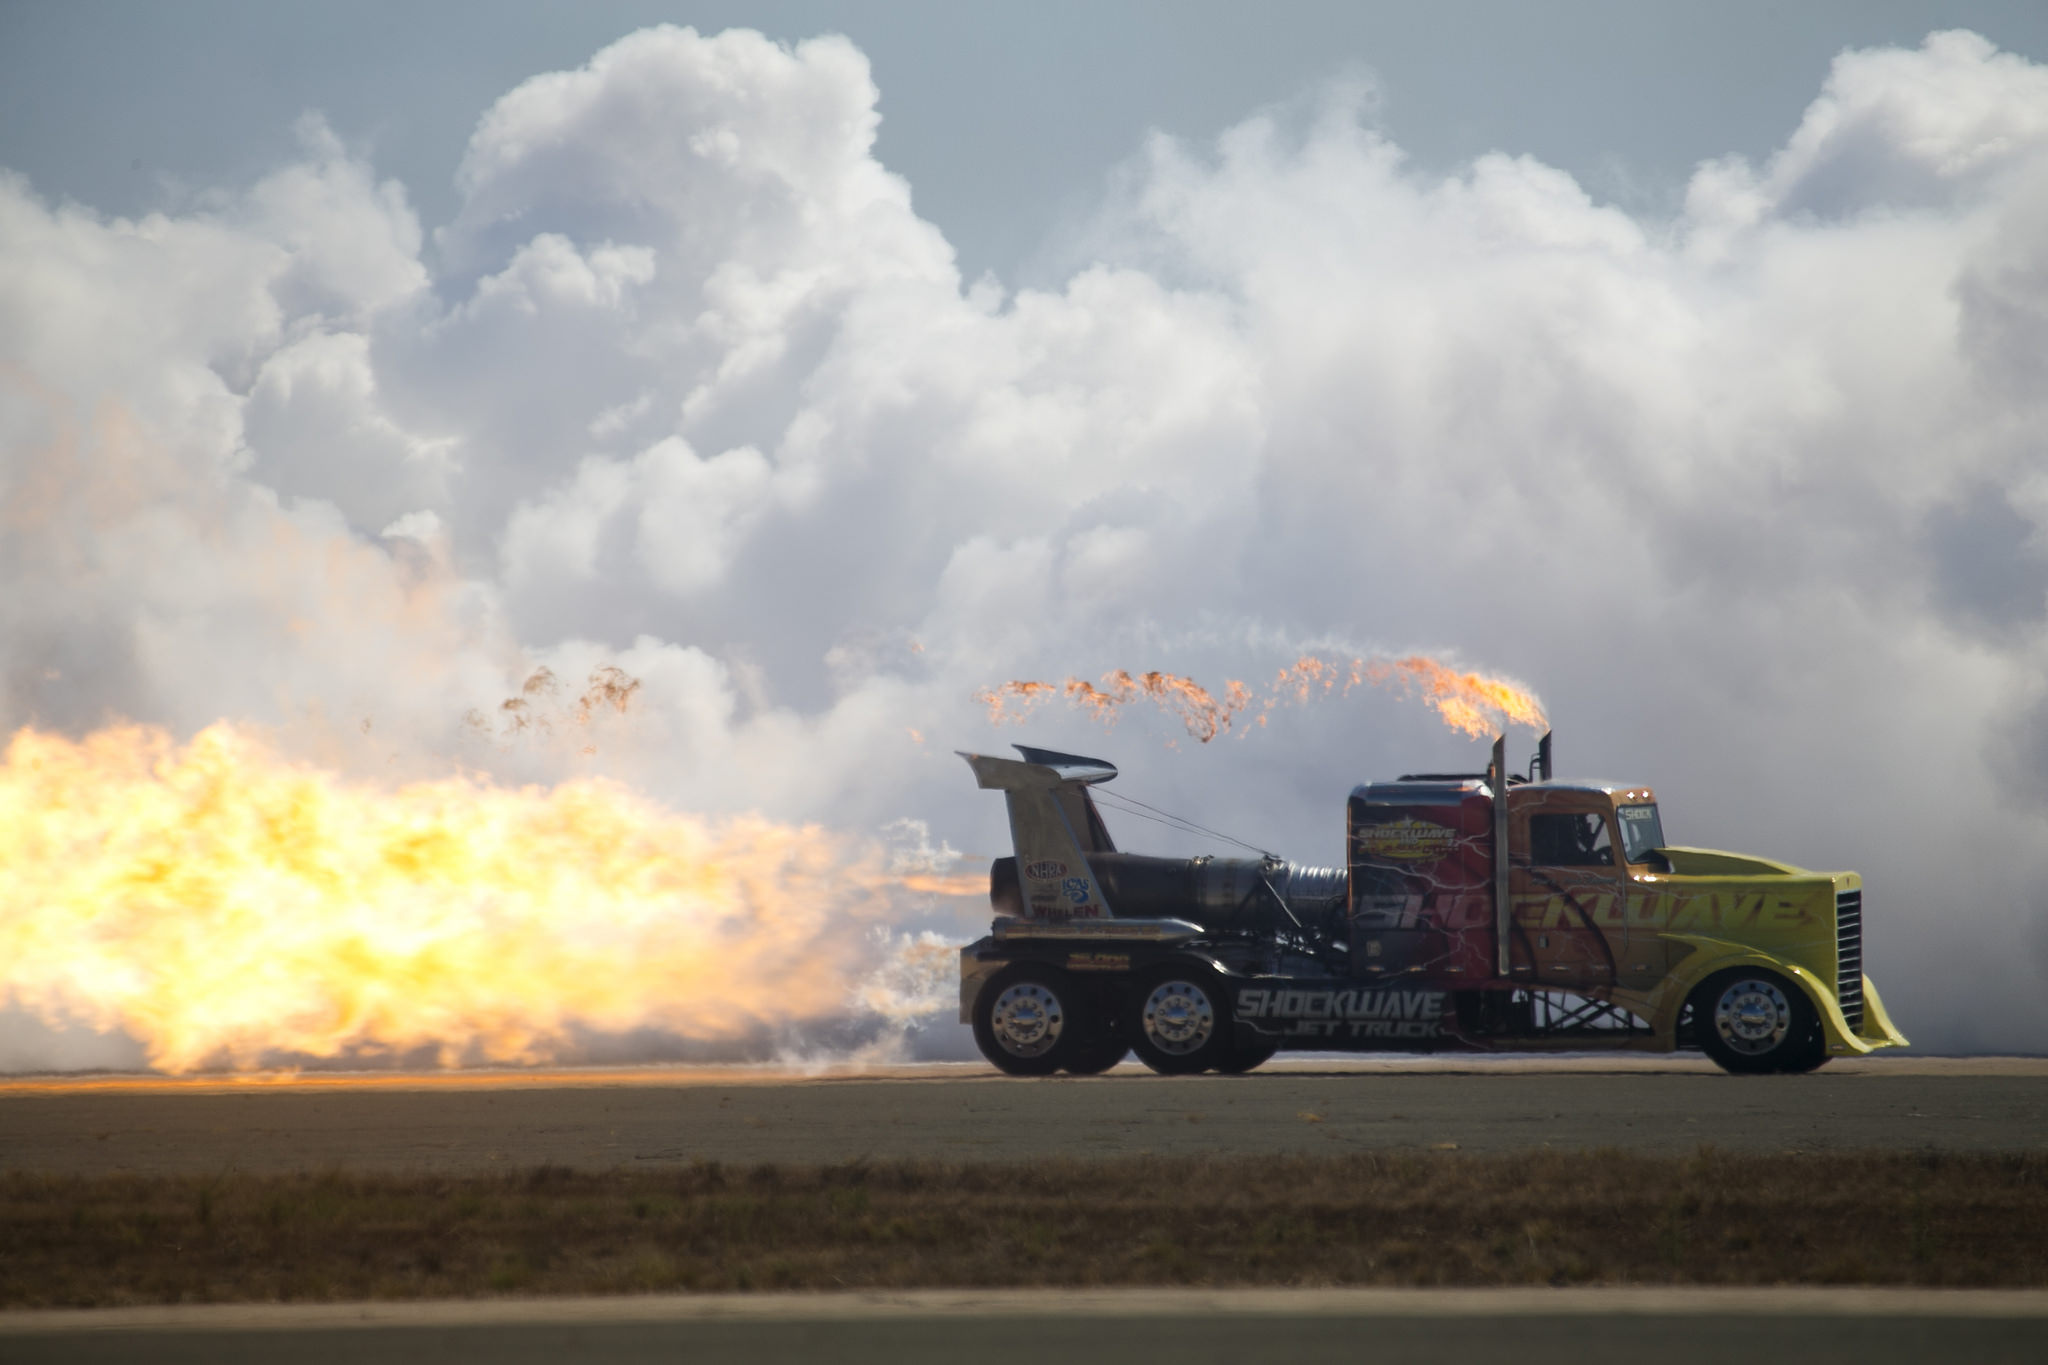 The Shockwave Jet Truck races across the flight line during the 2018 Marine Corps Air Station Miramar Air Show at MCAS Miramar, Calif., Sept. 28, 2018. ( Lance Cpl Raynaldo D. Ramos/Marine Corps)